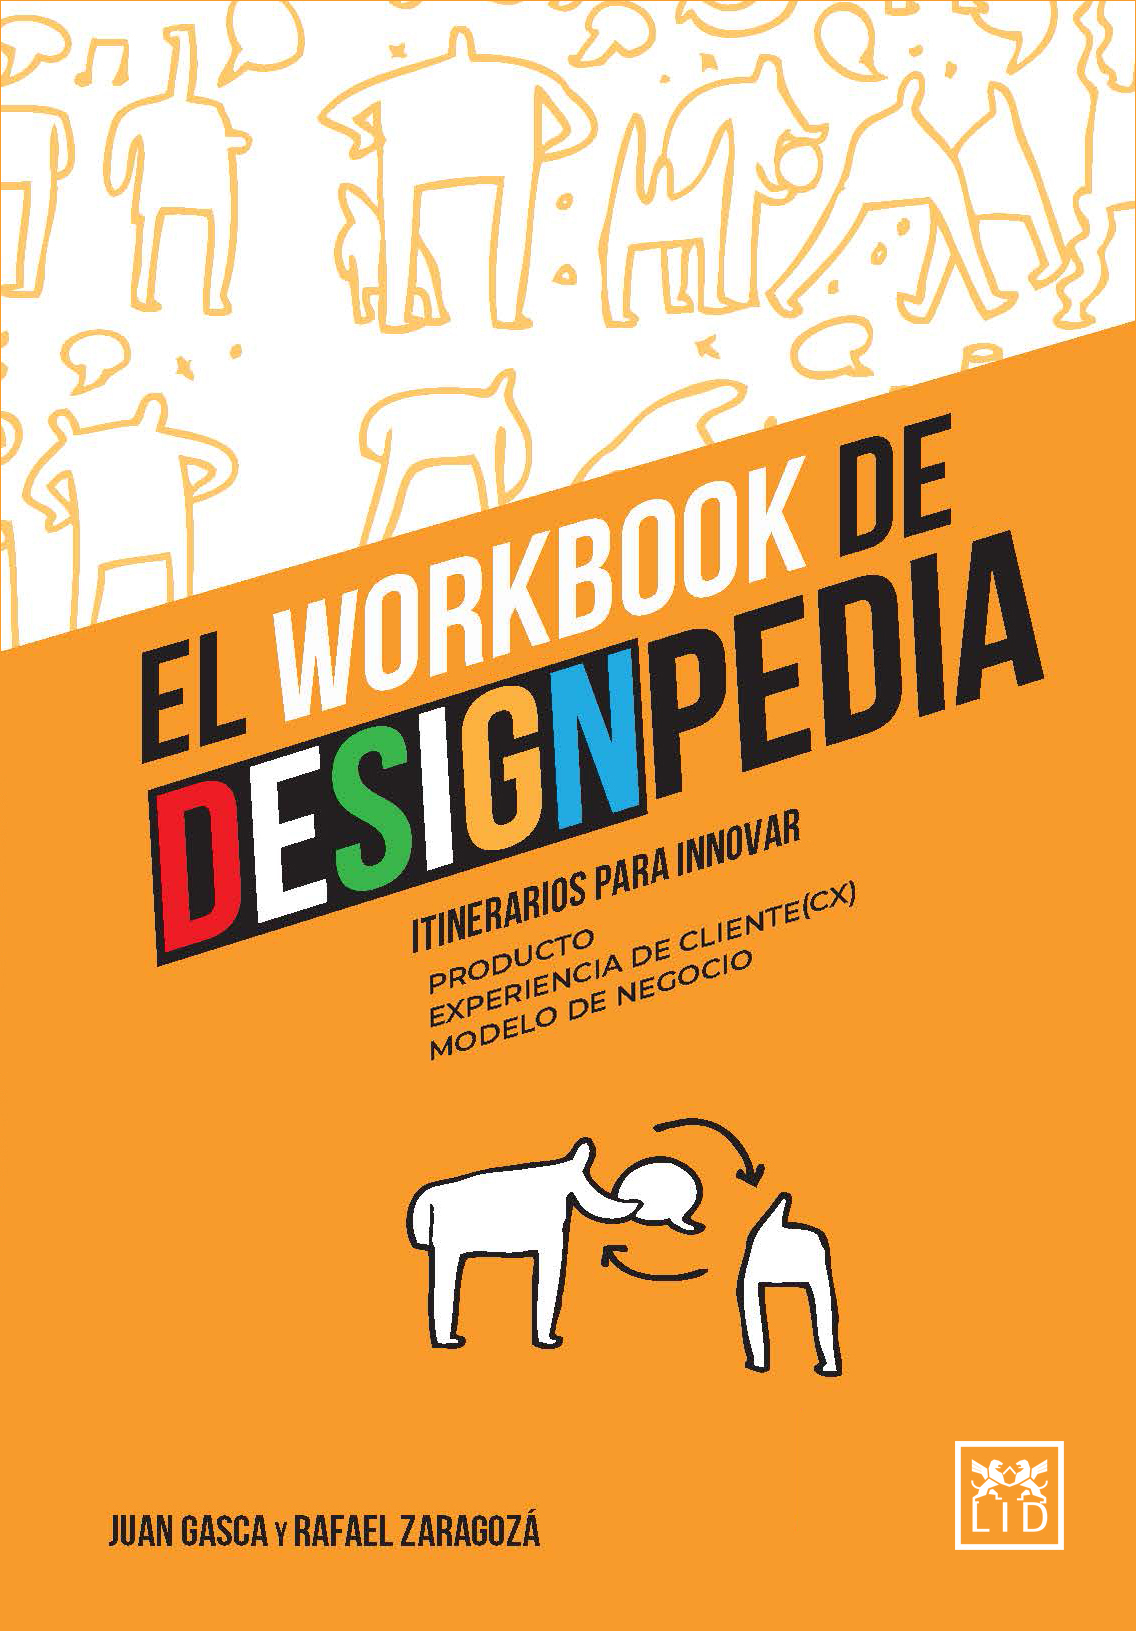 workbook-designpedia